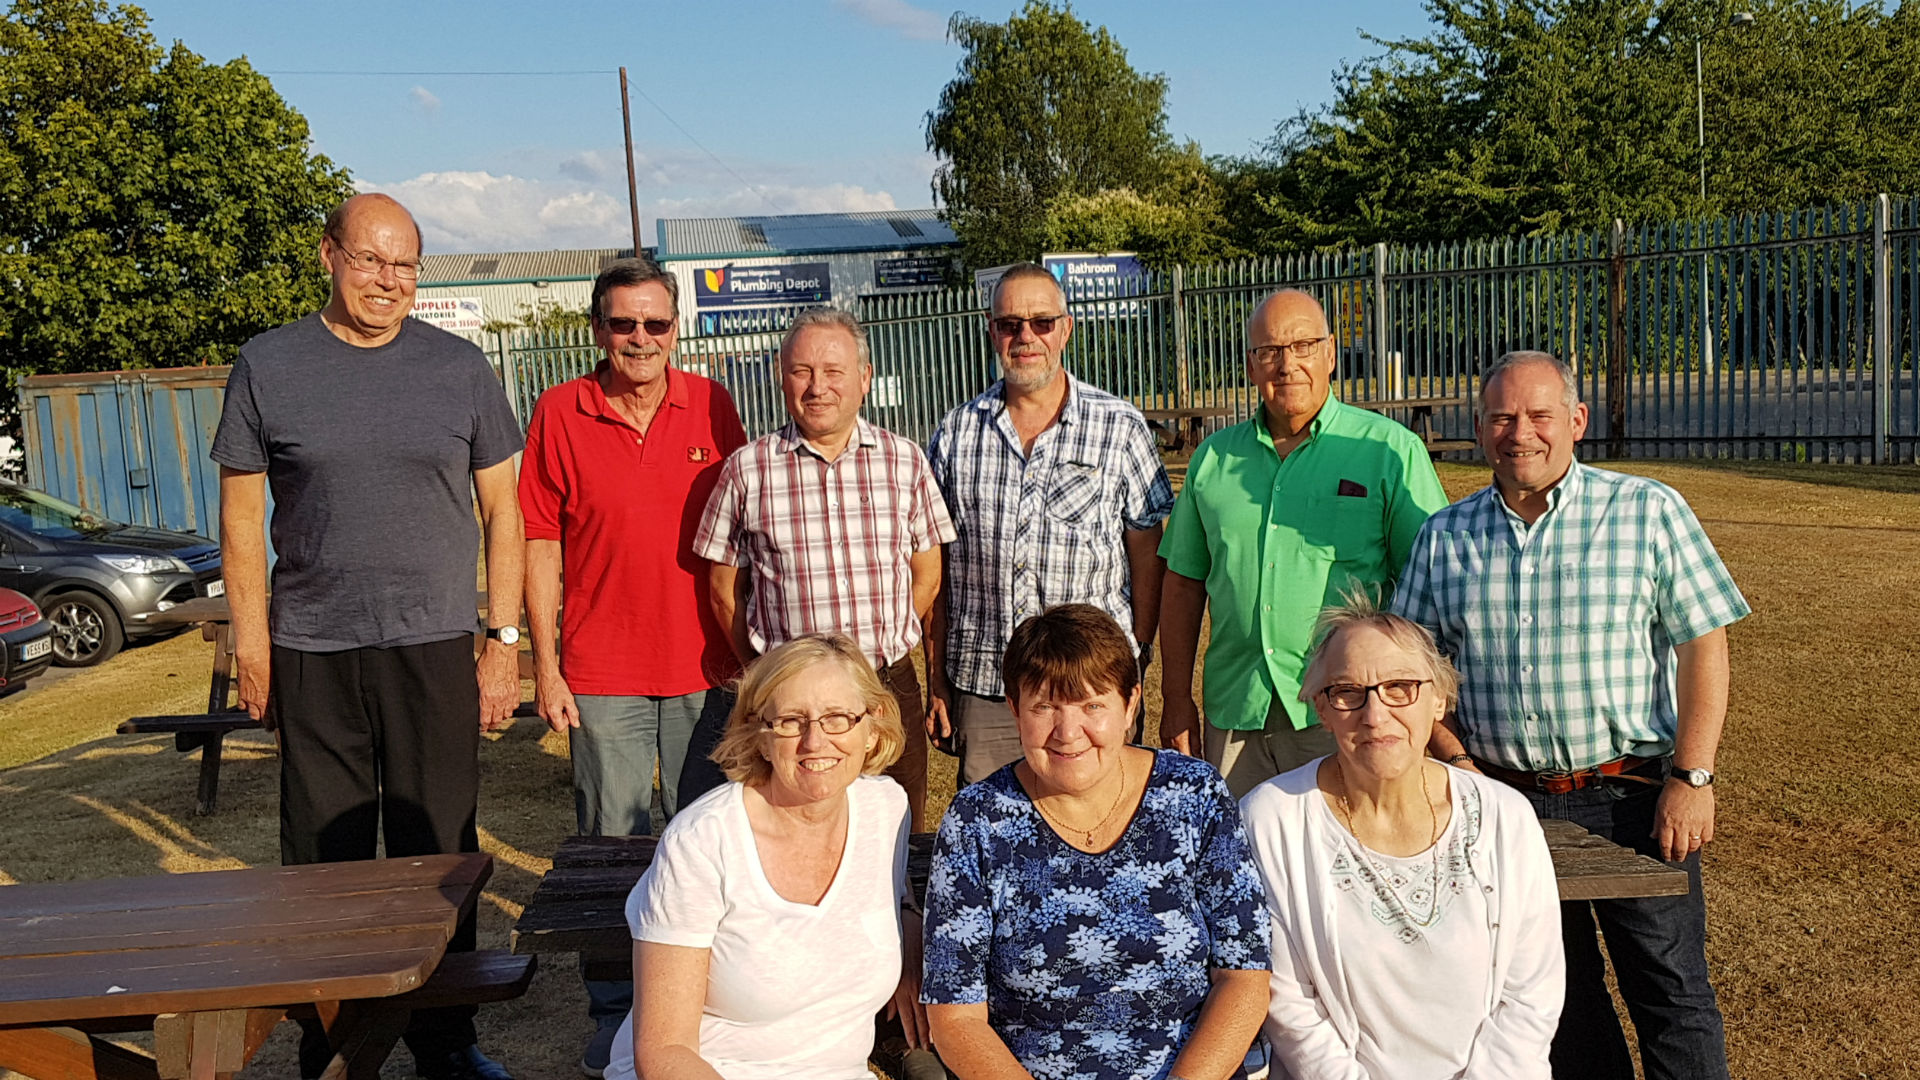 Stairfoot station team